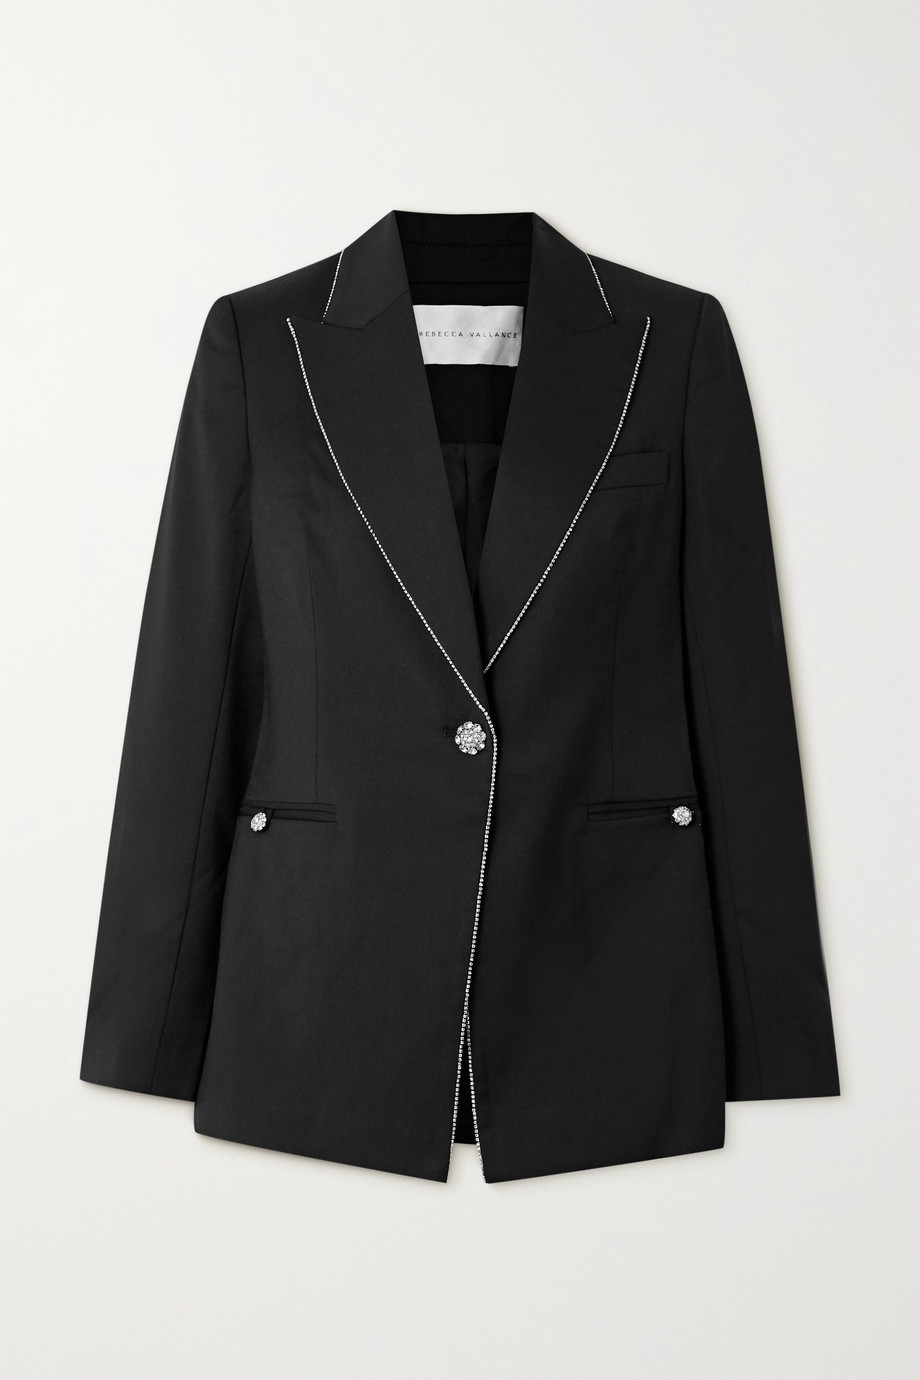 REBECCA VALLANCE Starwood crystal-embellished twill blazer